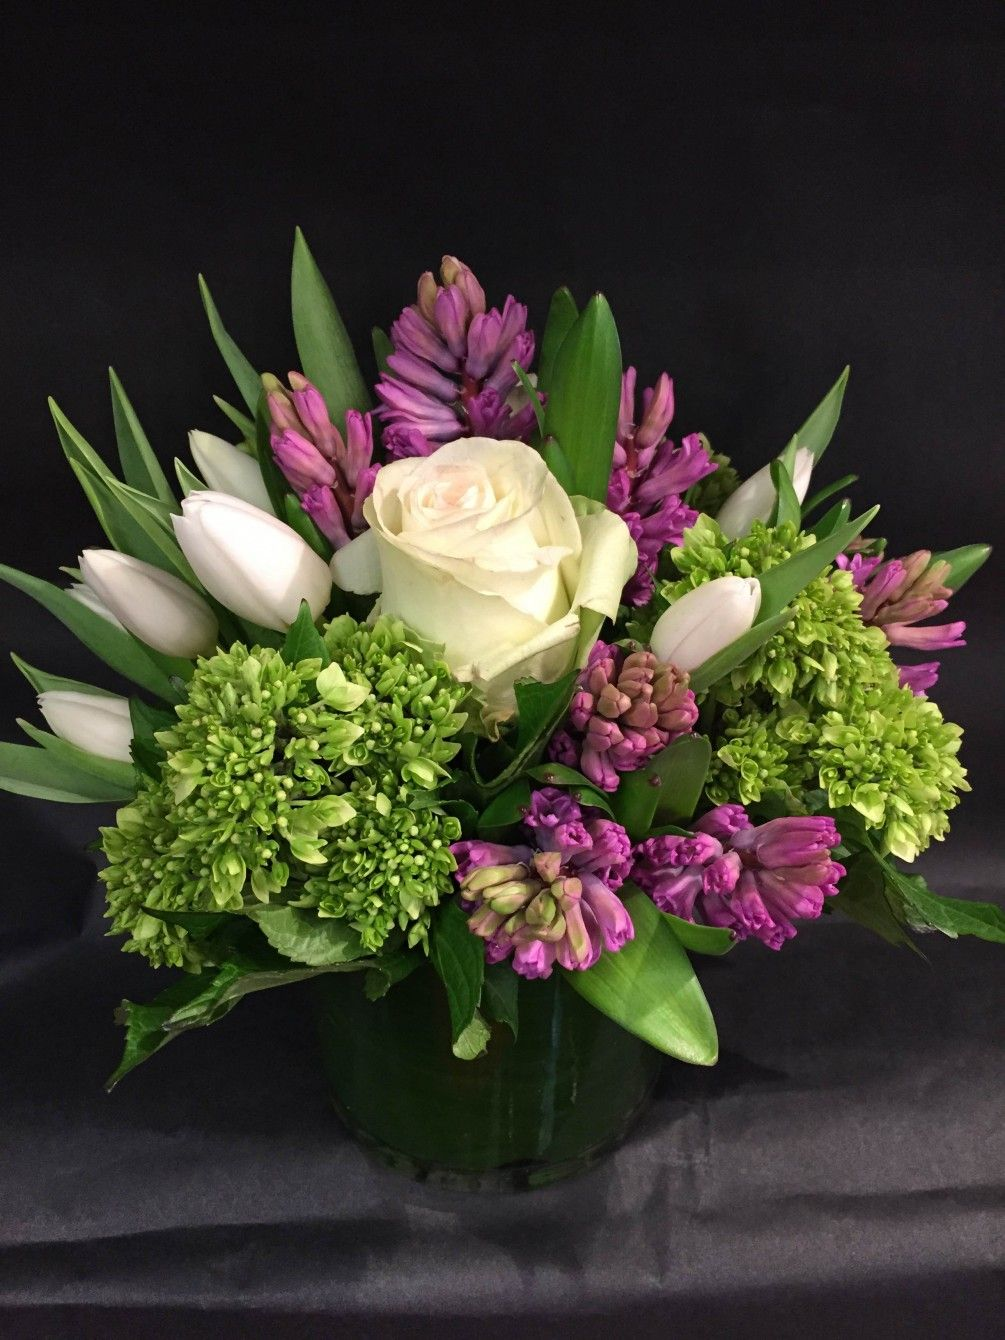 Tulips Hyacinth Hydrangea And Roses Complete This Contemporary